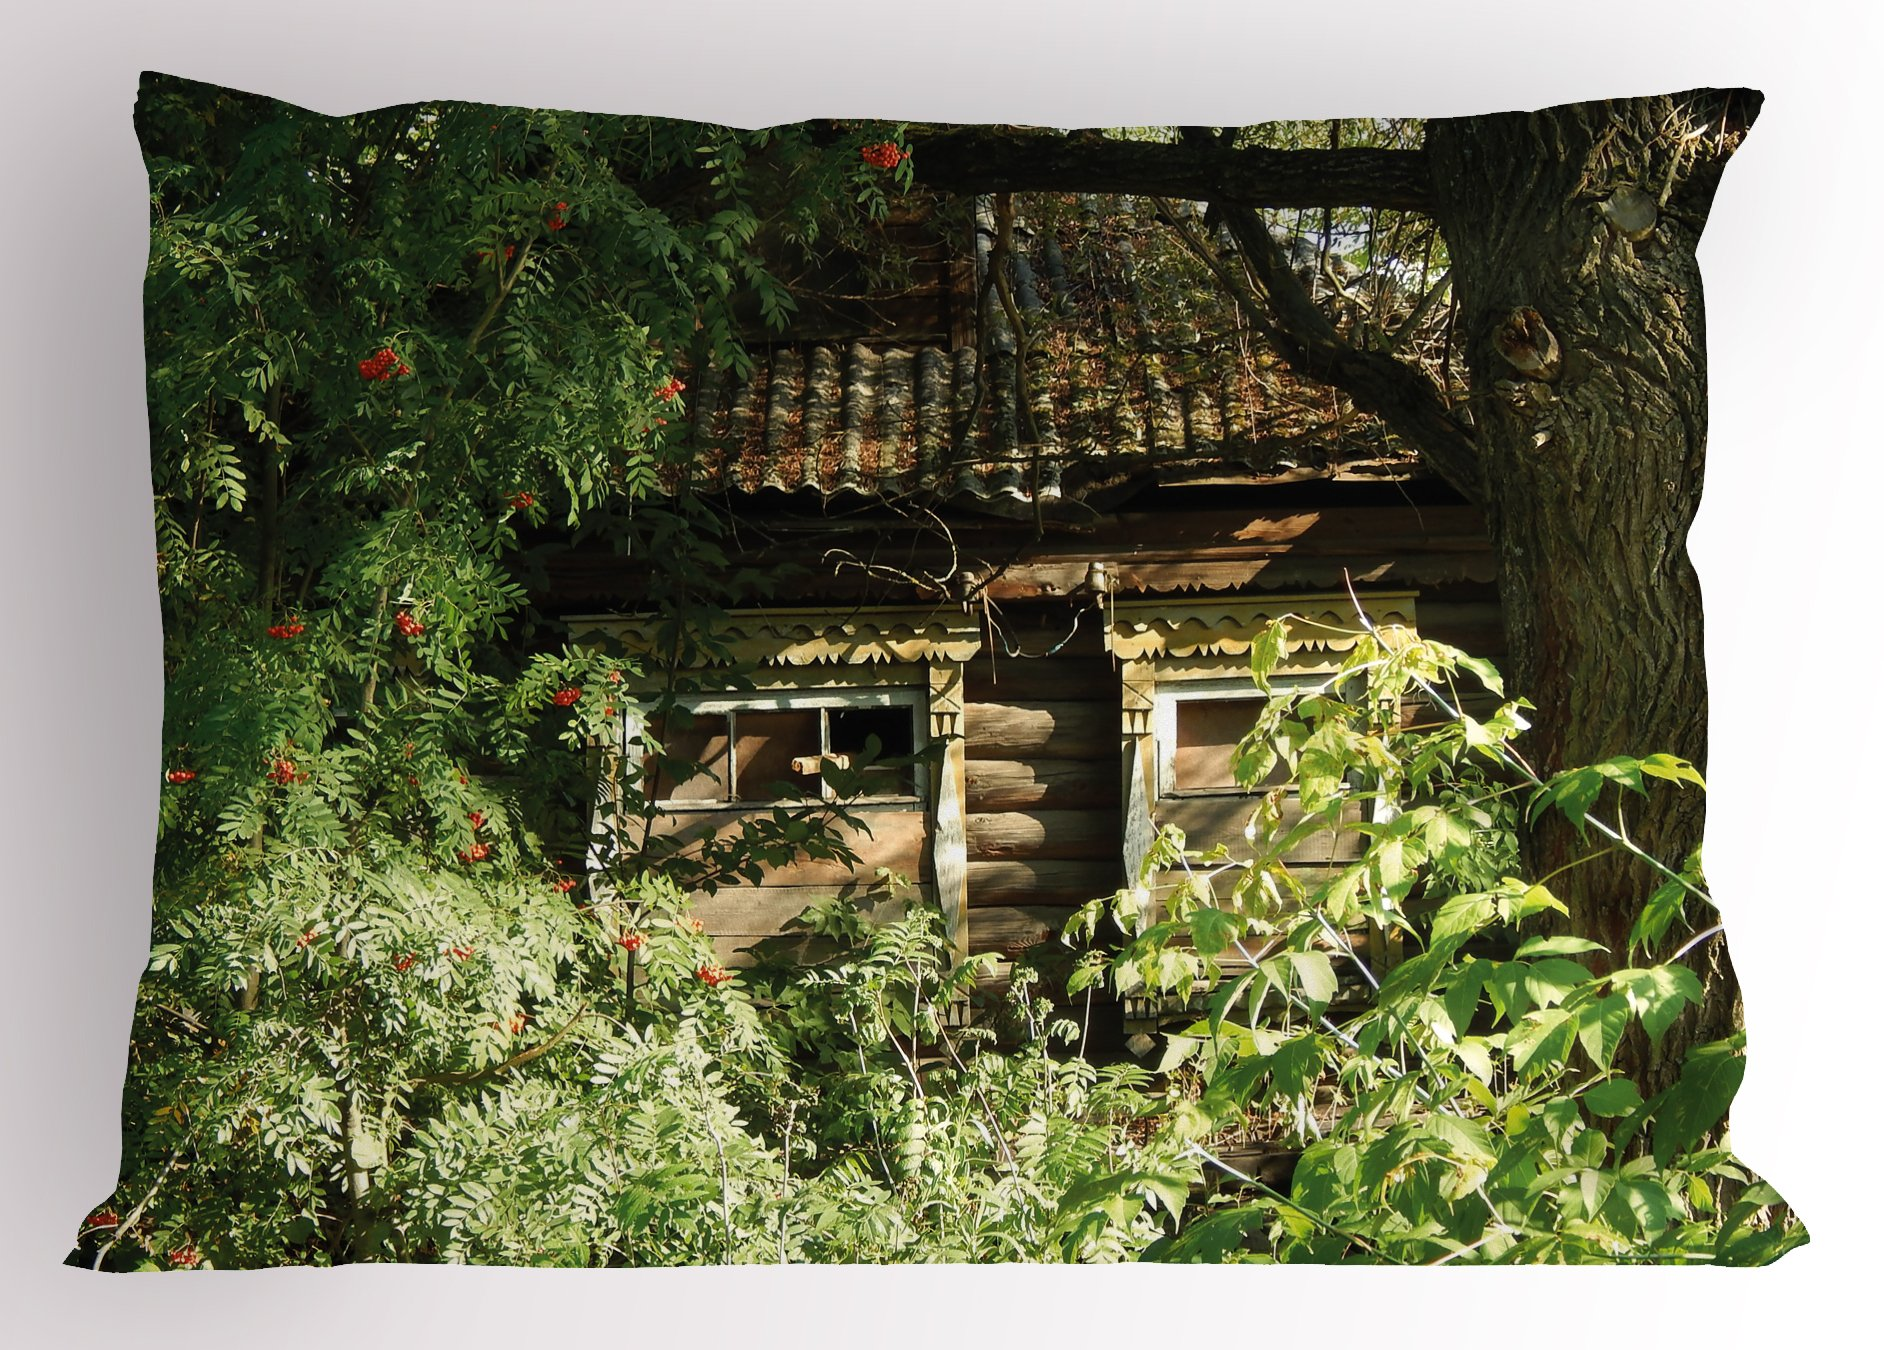 Lunarable Rustic Pillow Sham, Abandoned Cute Oak Cottage in Bushes Ferns Wood Land Camouflage of Nature Theme, Decorative Standard King Size Printed Pillowcase, 36 X 20 inches, Green Brown